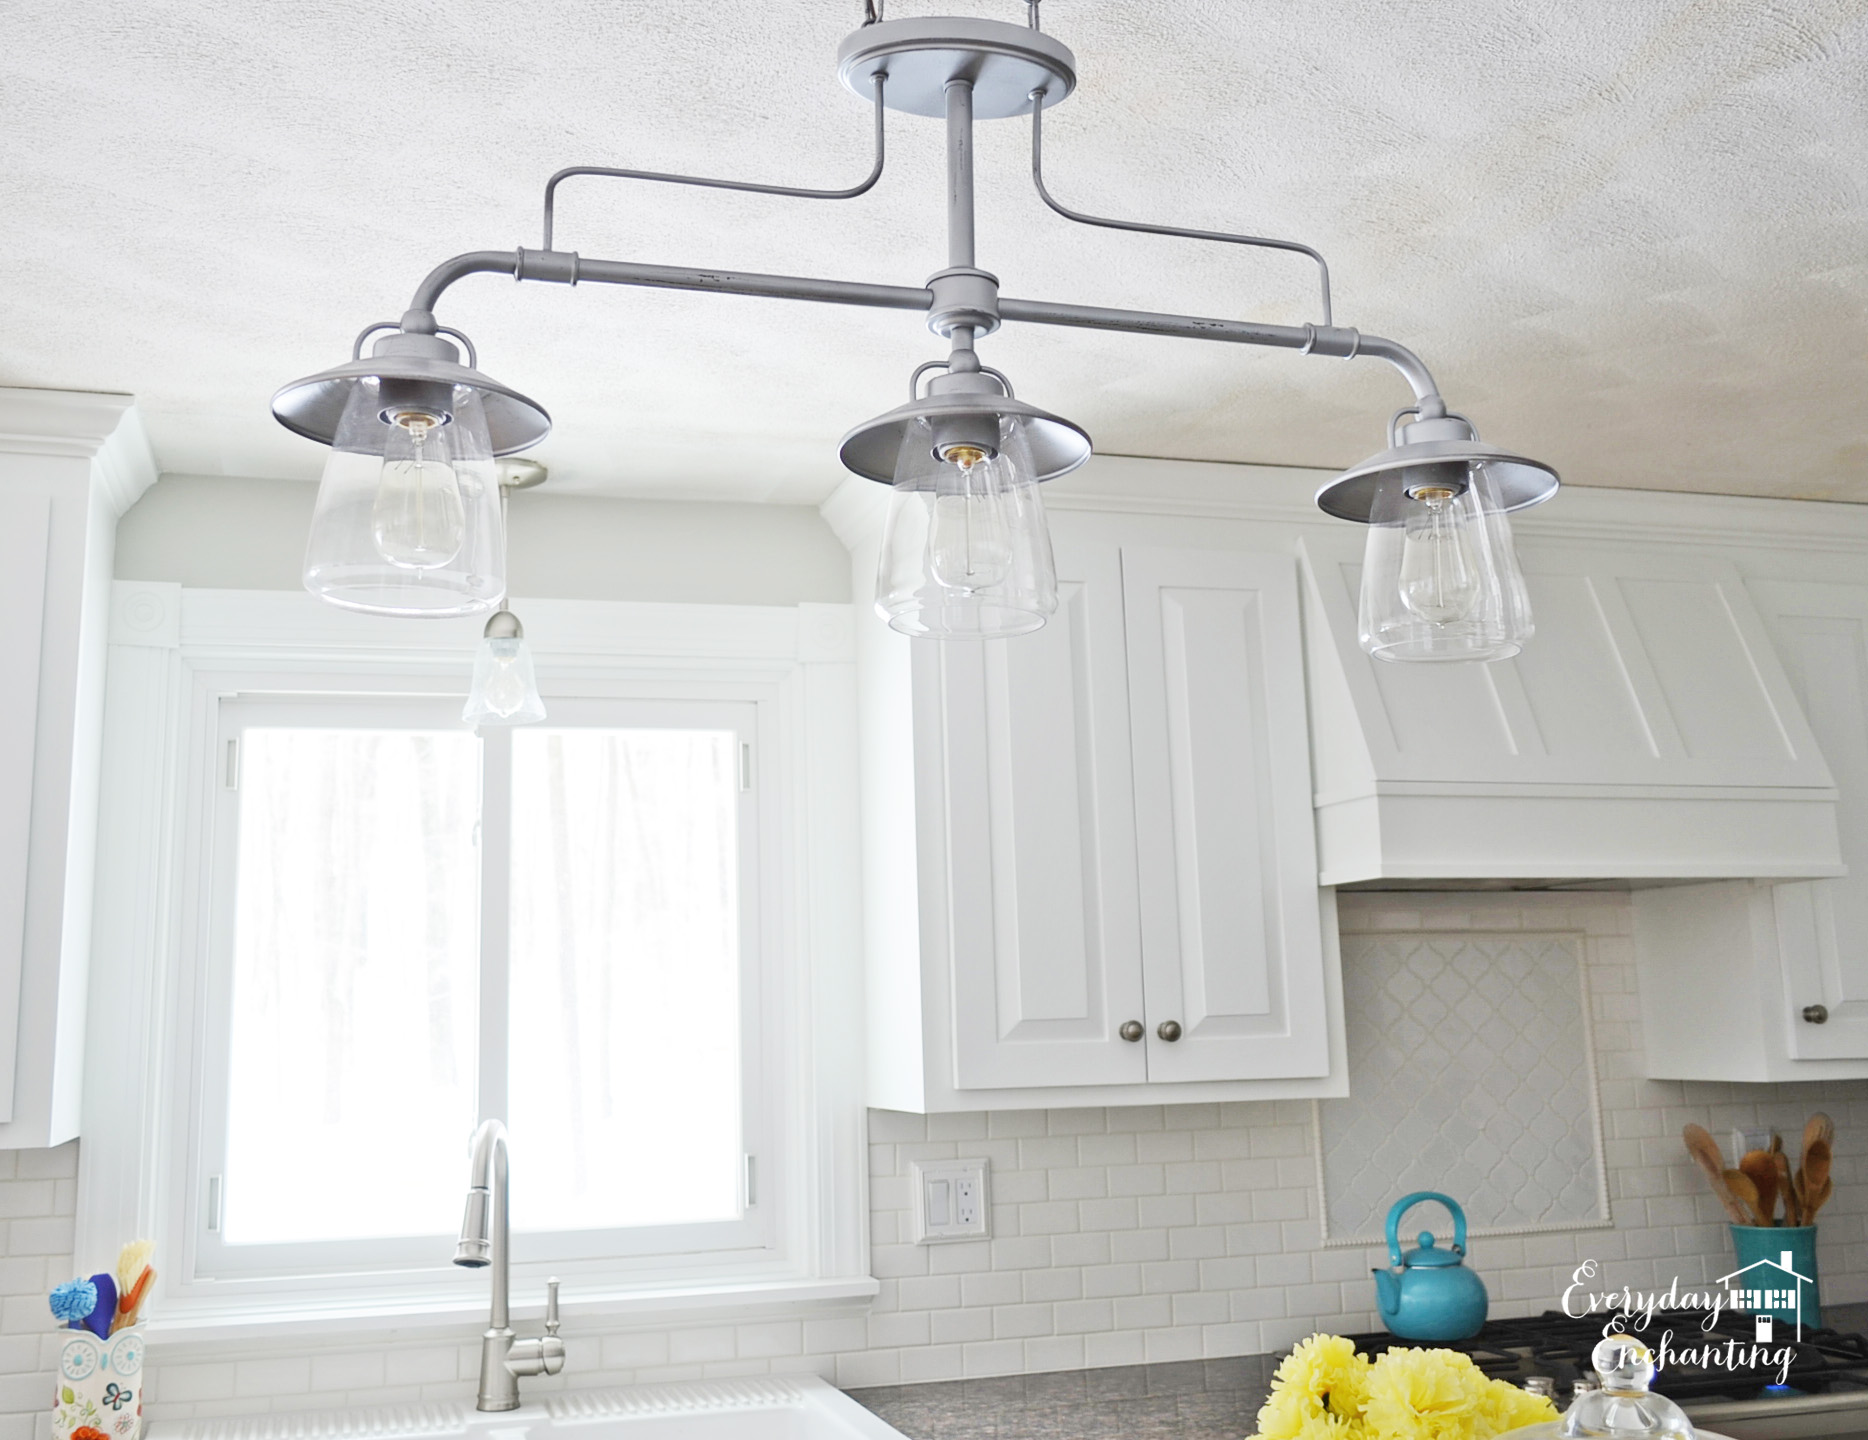 Vintage style bathroom light fixtures